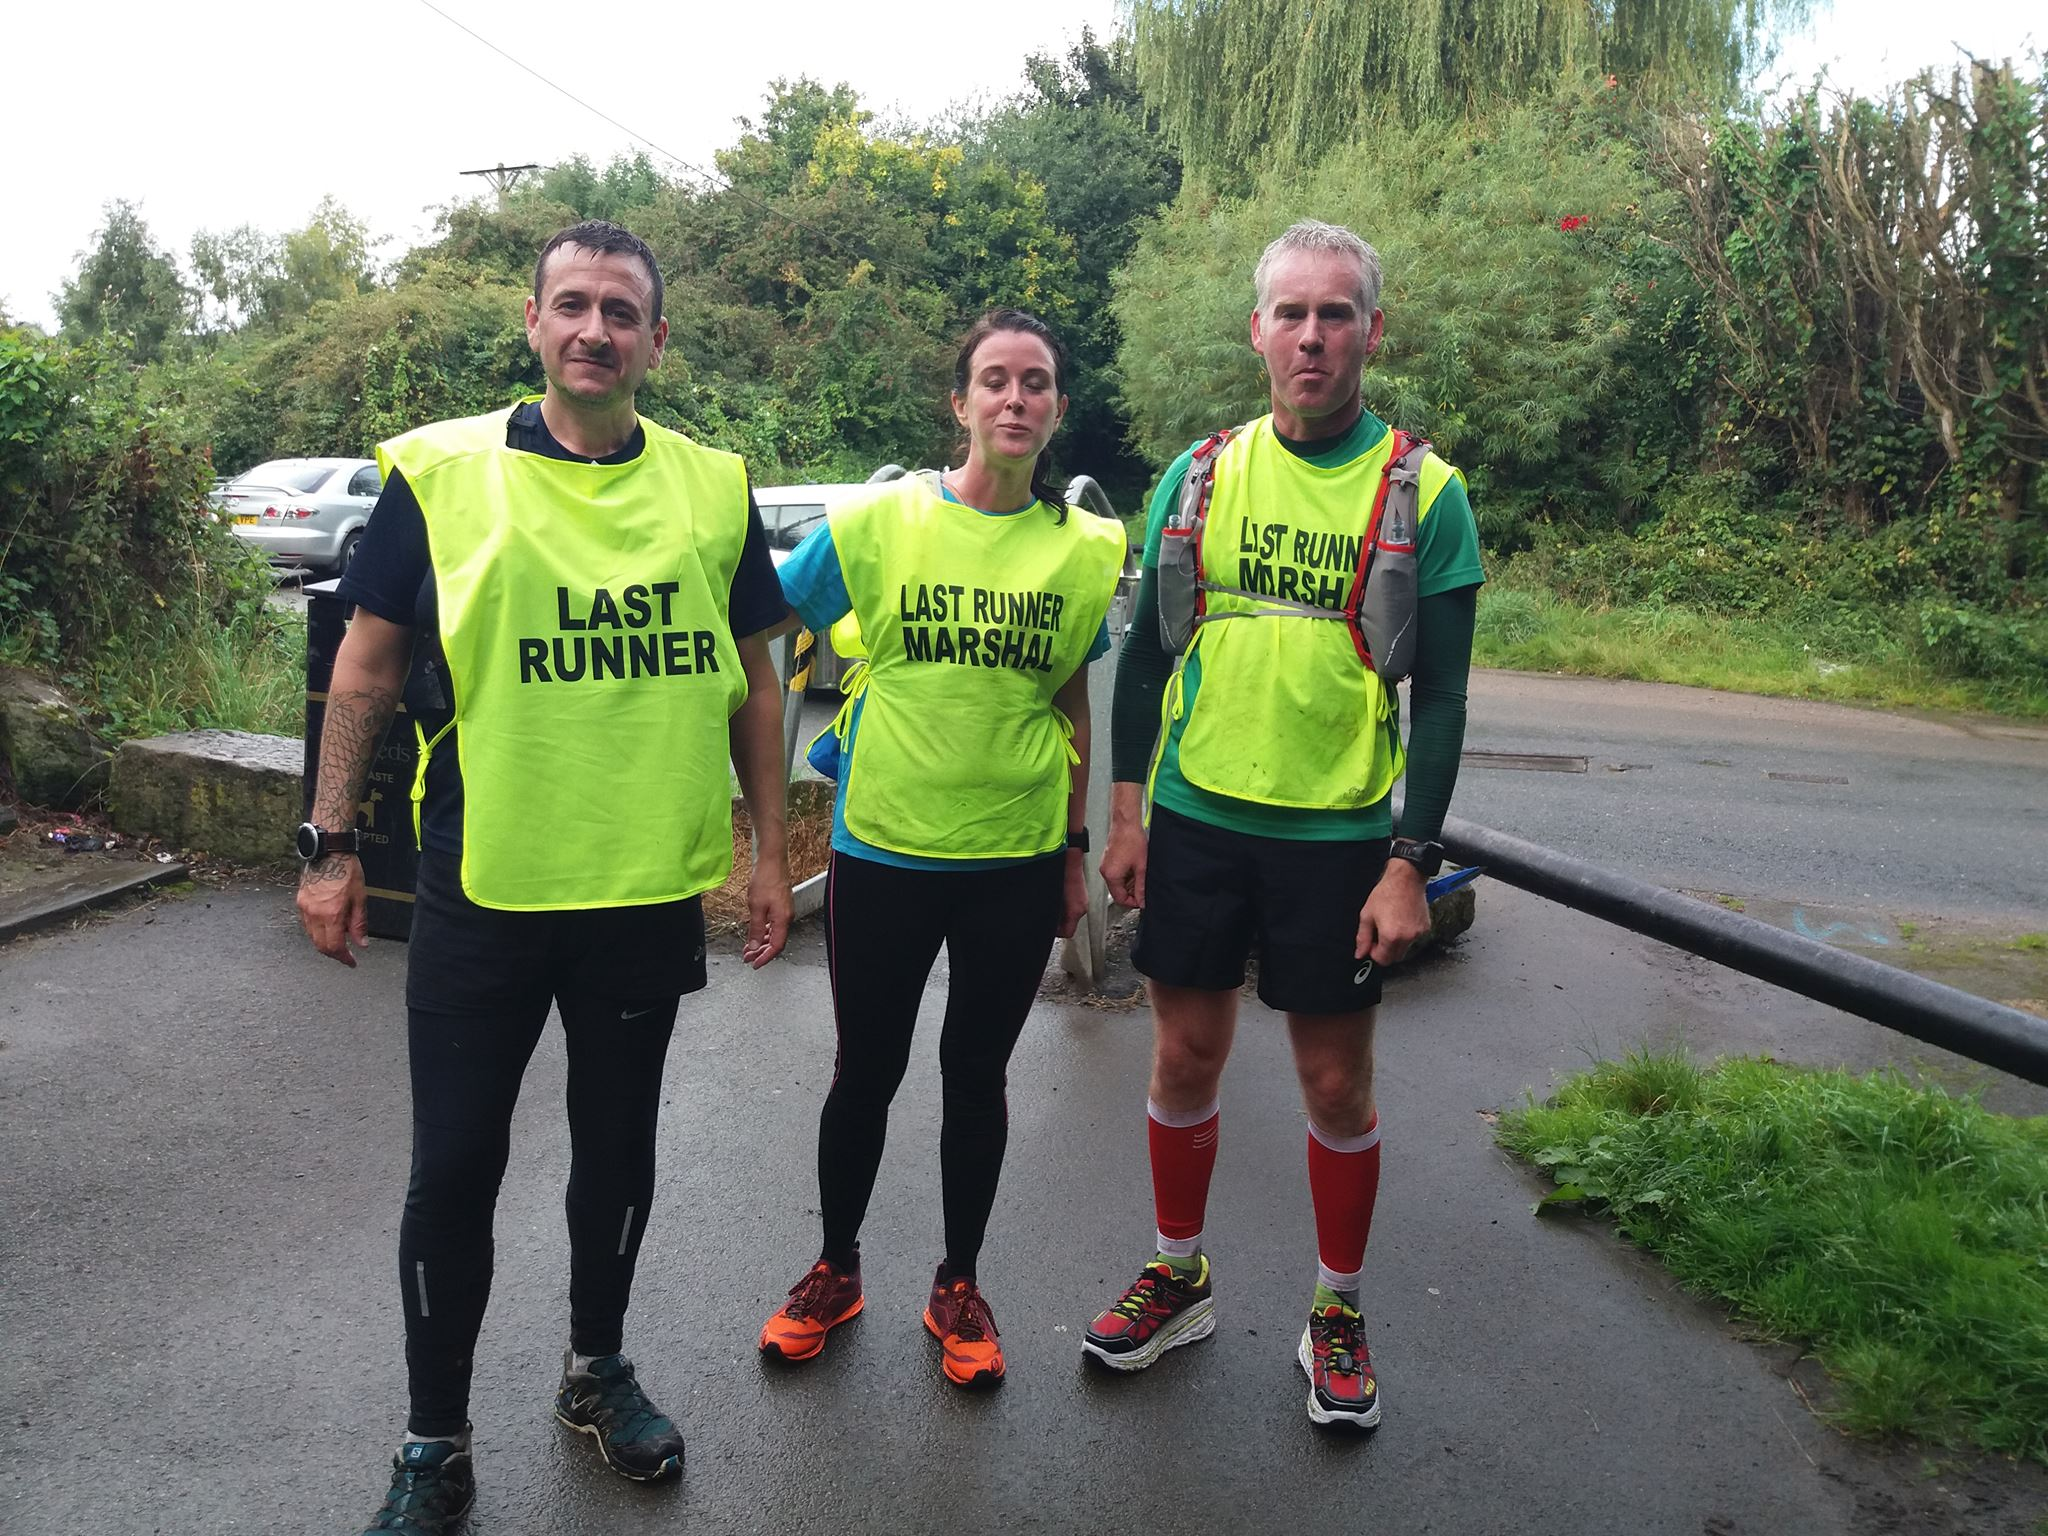 3 Race Marshal's at a Punk Panther endurance event all wearing green high visiblity vests.